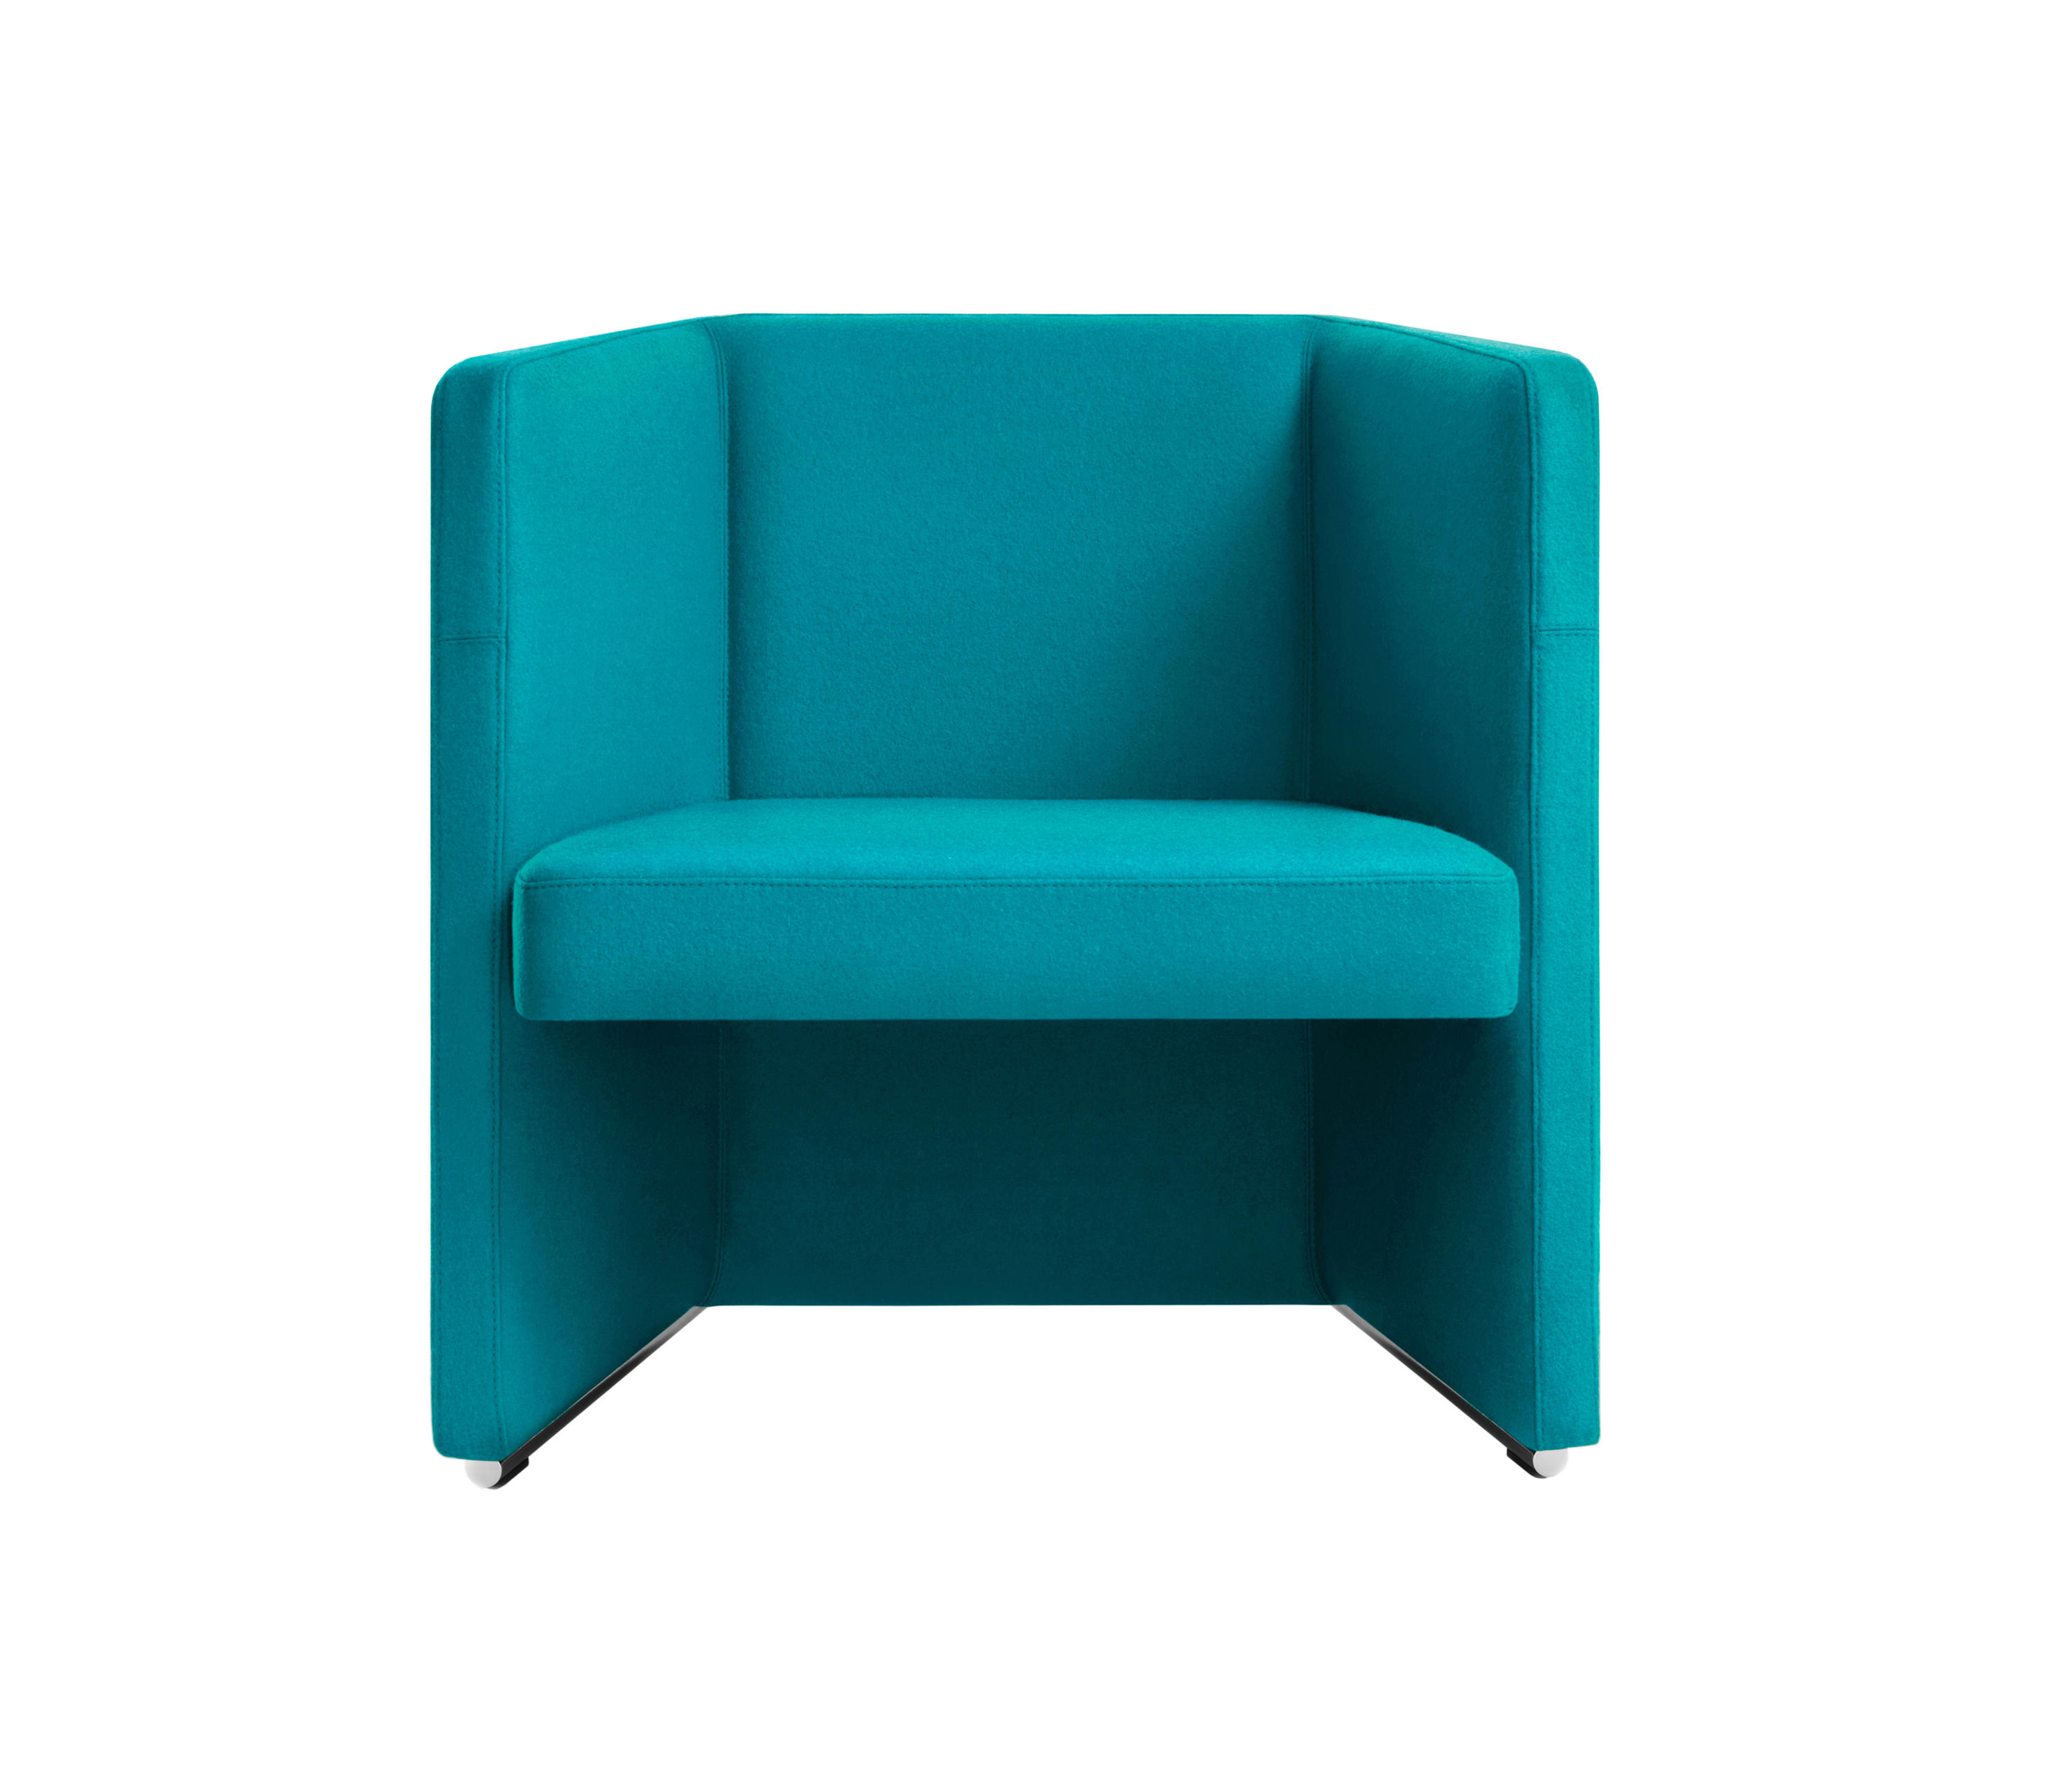 TALK 8701 - Armchairs from Keilhauer | Architonic